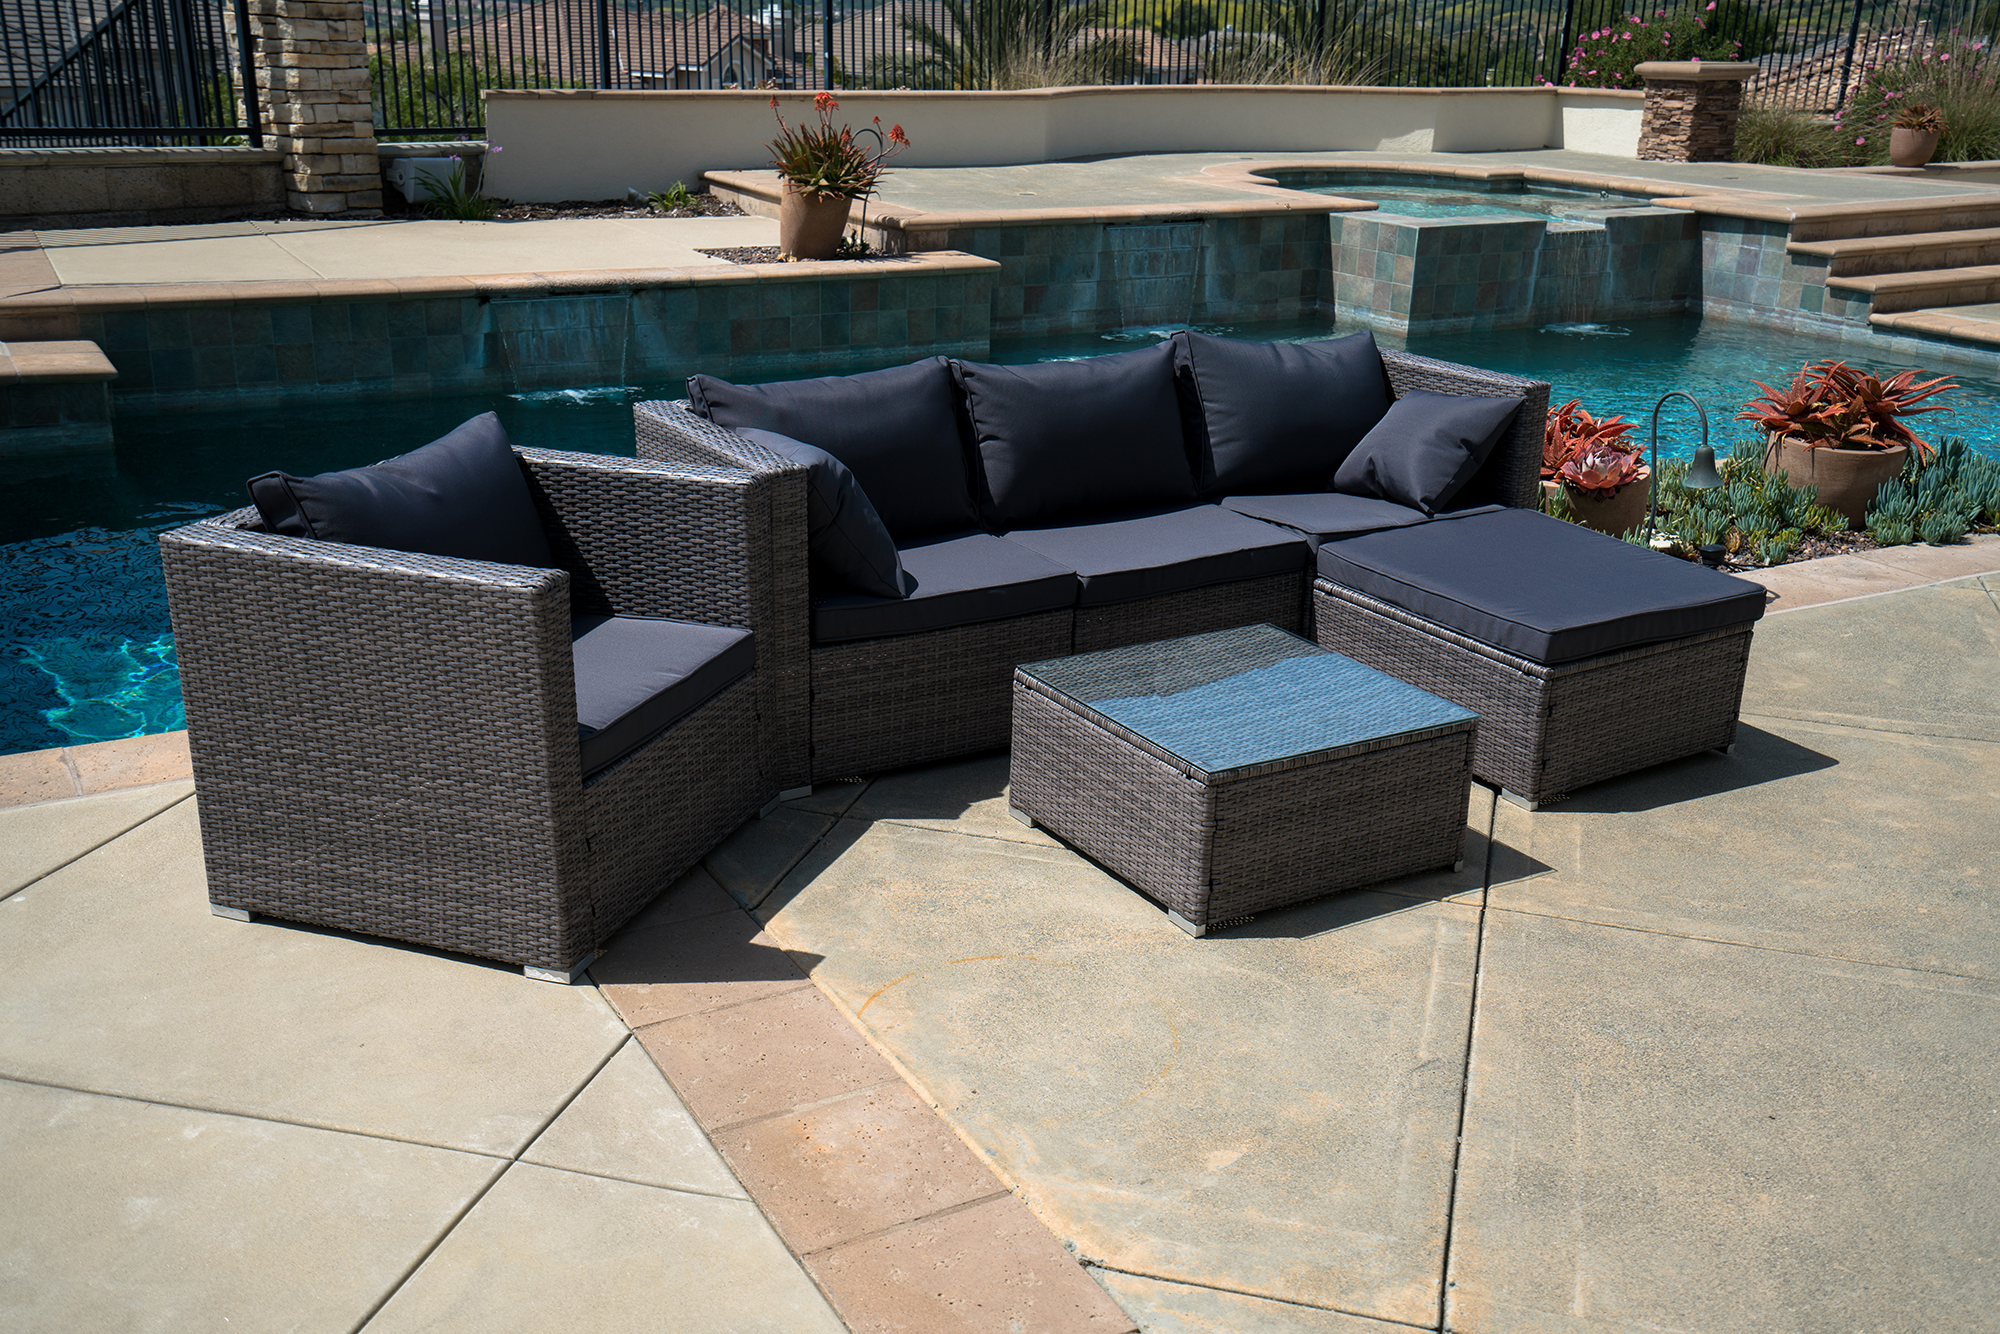 6pc outdoor patio furniture rattan wicker sectional sofa chair couch brown gray. Black Bedroom Furniture Sets. Home Design Ideas